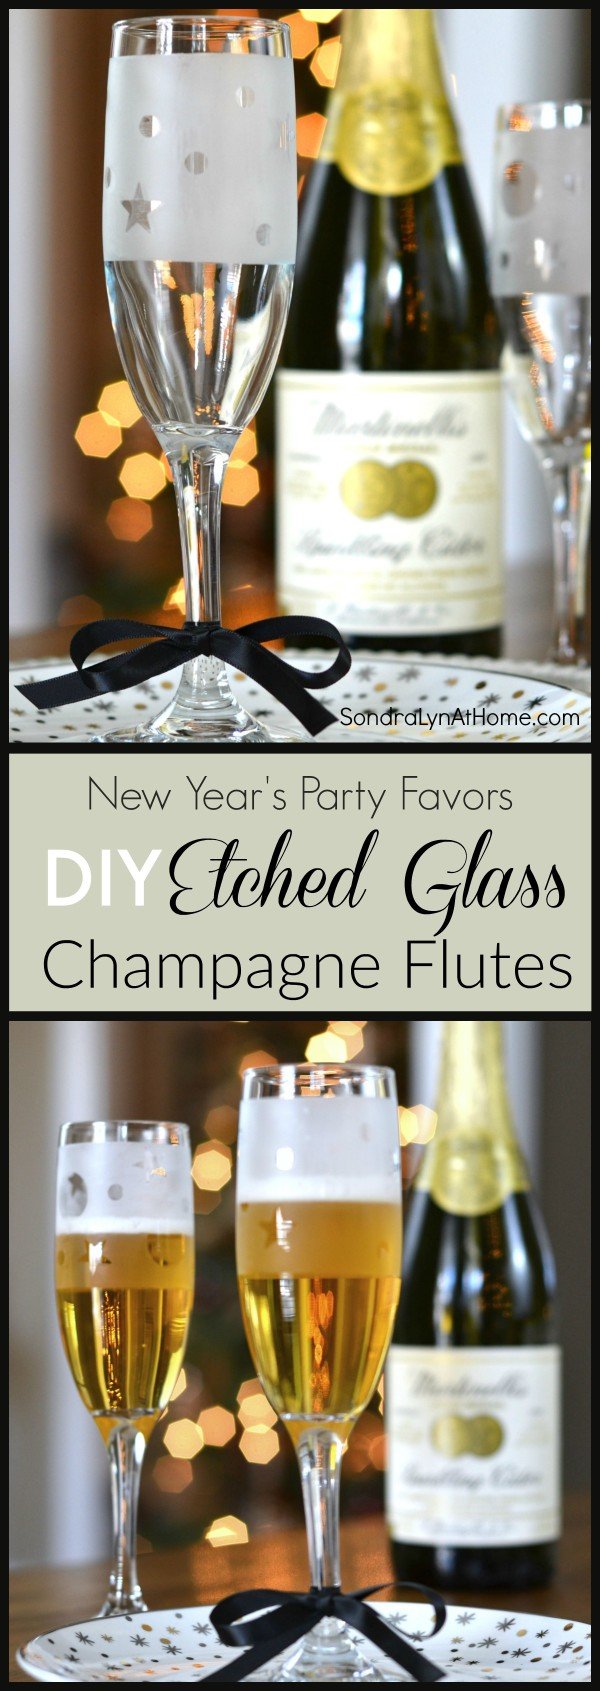 DIY Etched Glass Champagne Flute Party Favors -- pinnable image - - Sondra Lyn at Home.com